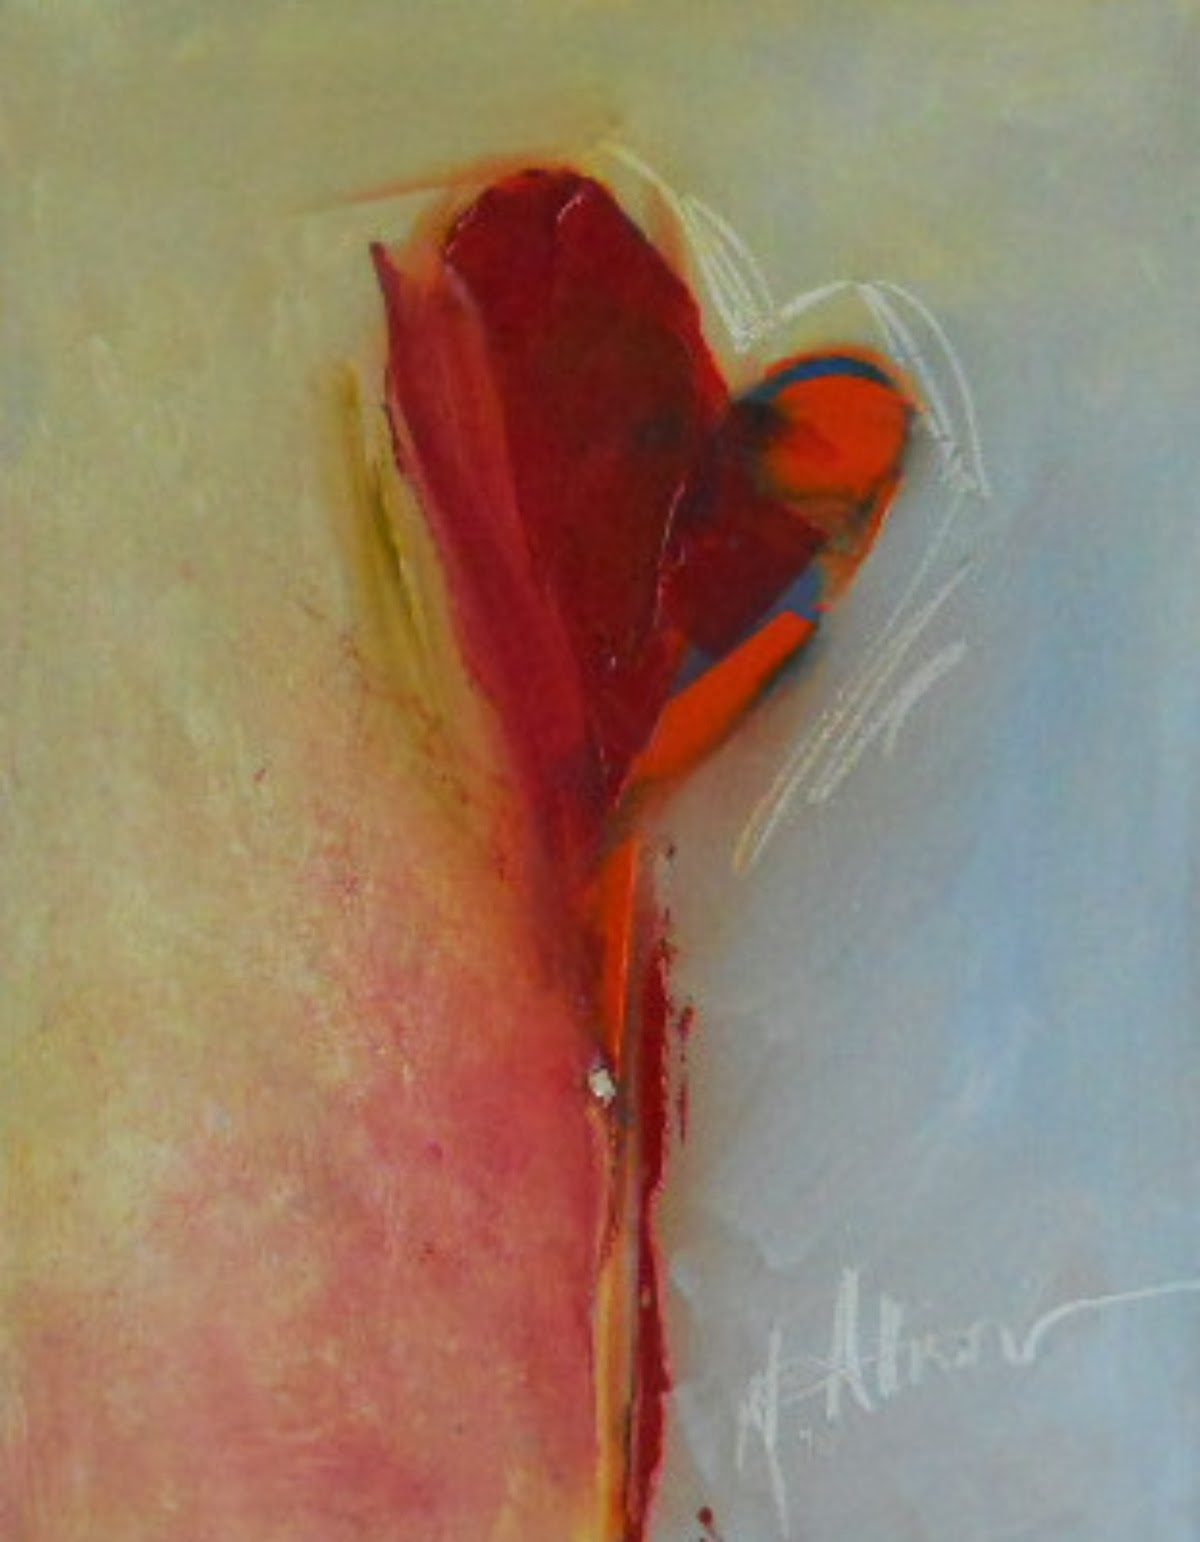 """""""My Heart,"""" by M. Allision, 2013, 11 X 14 Oil.http://mallisonfineart.blogspot.com/2013/12/contemporary-abstract-heart-painting-in.html"""